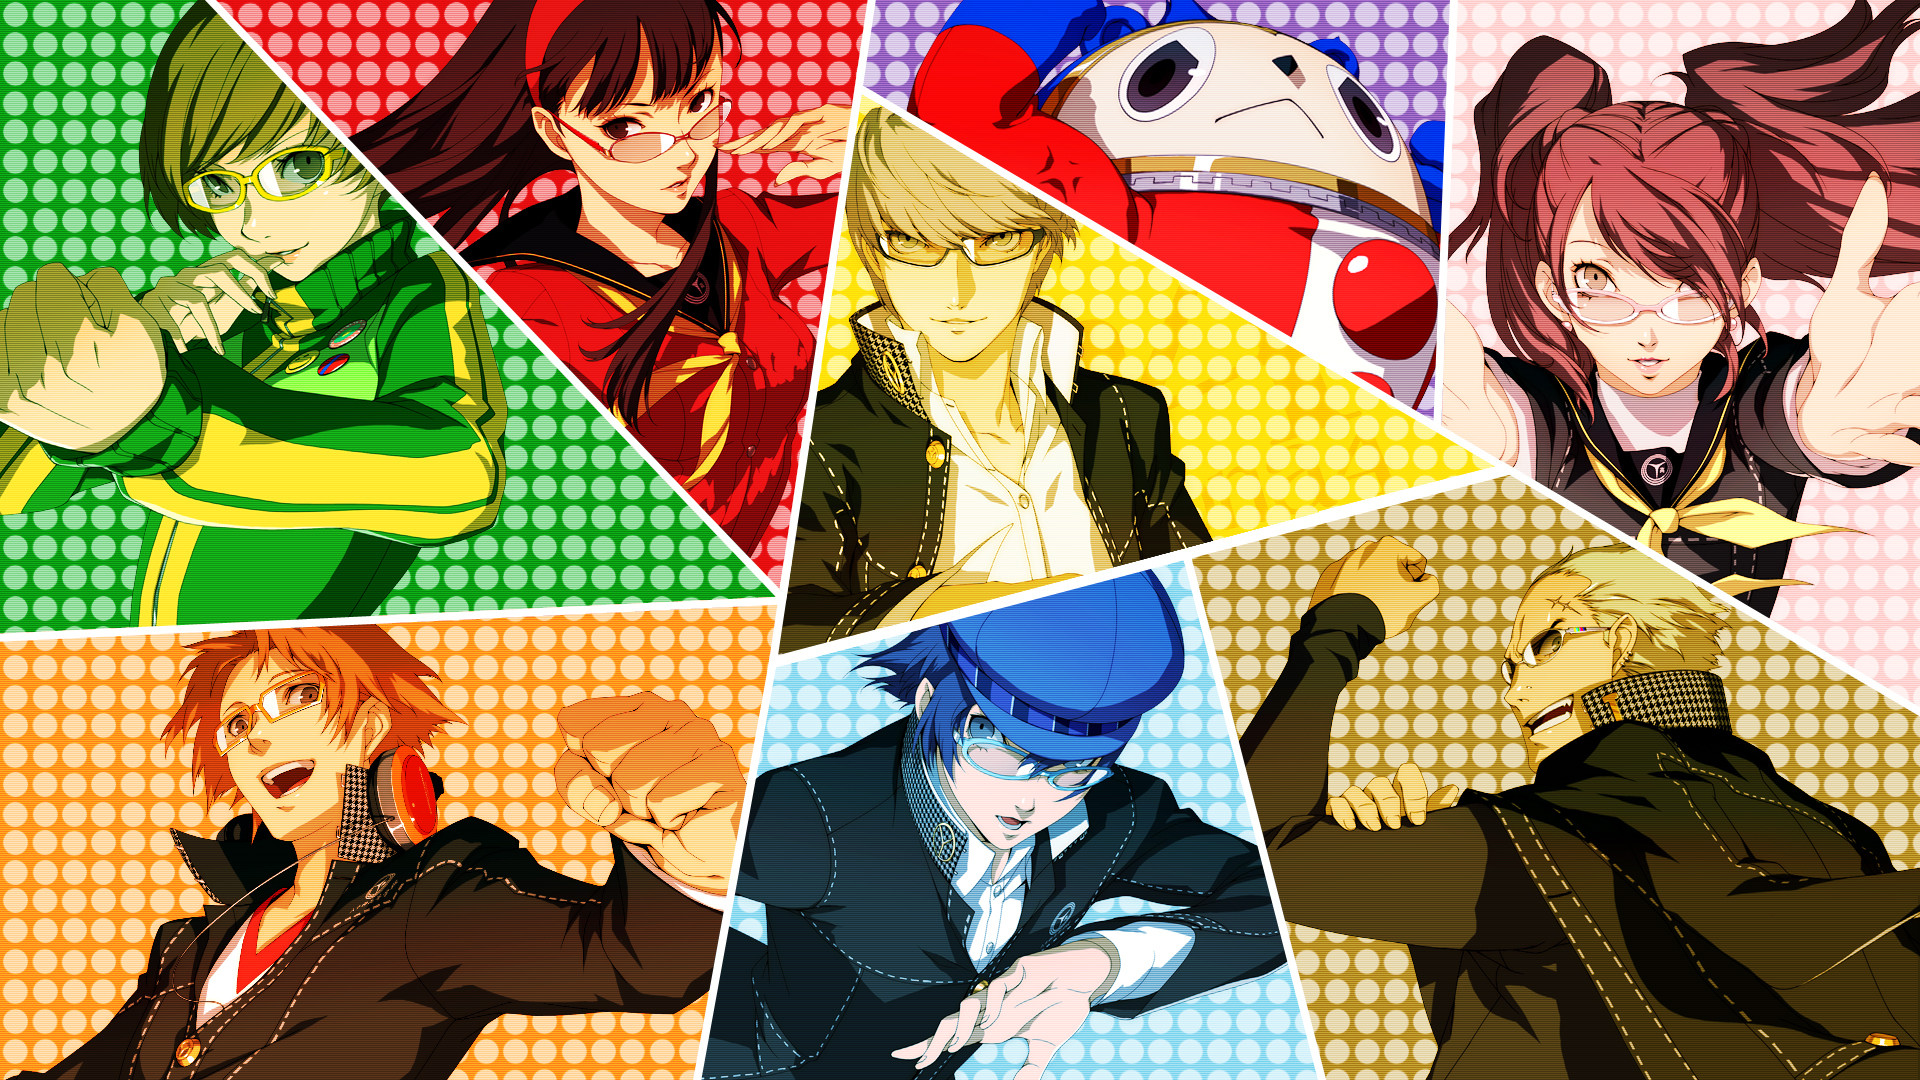 dating marie persona 4 golden